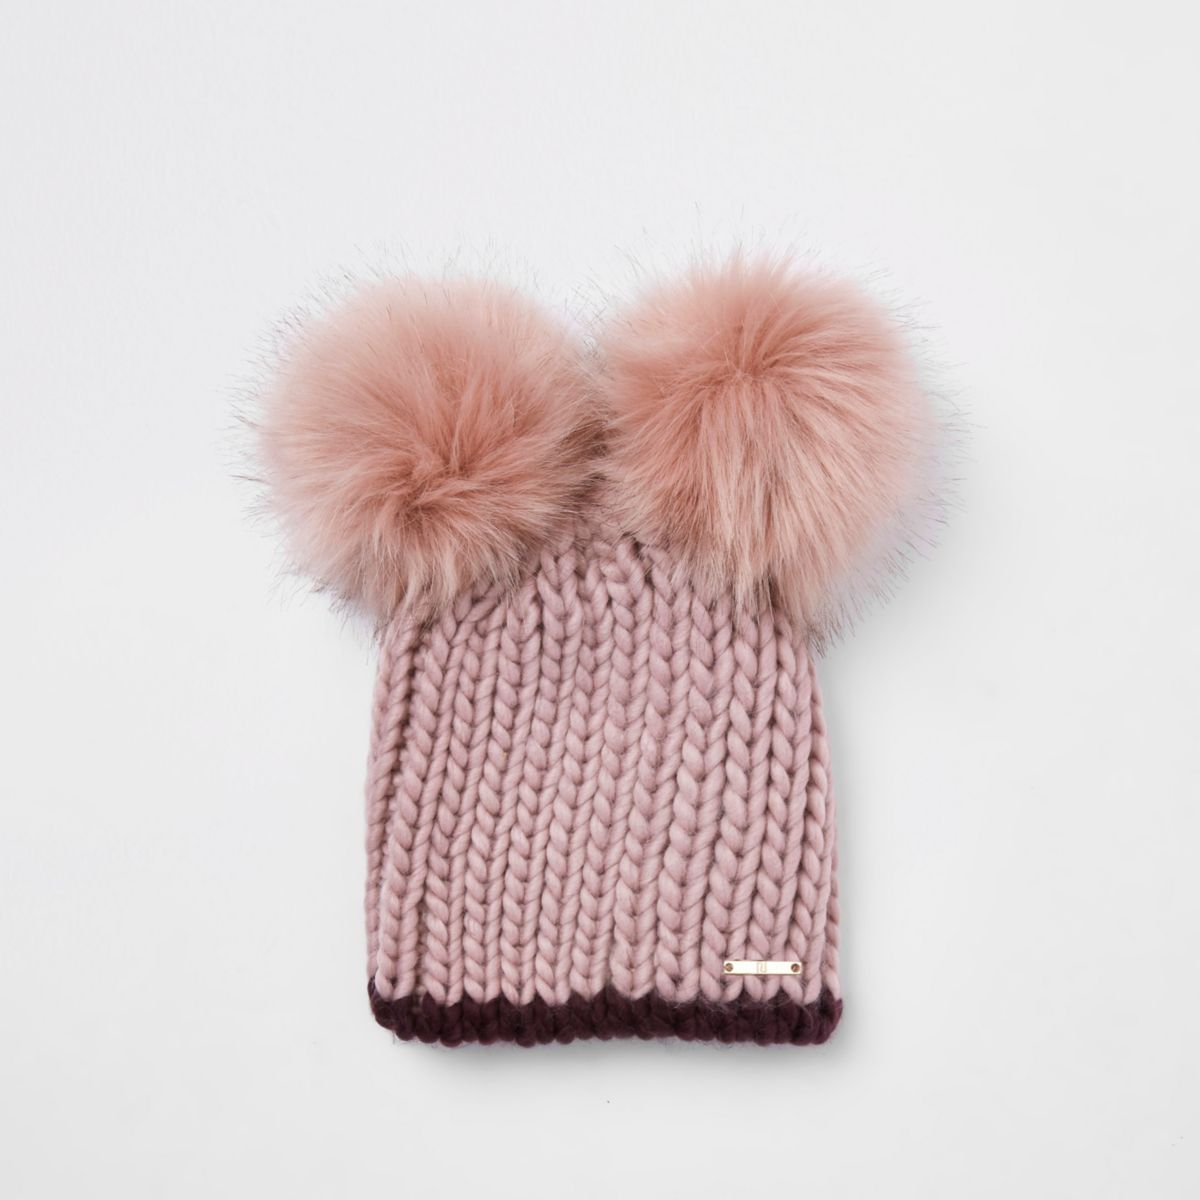 Cream faux fur double pom pom beanie - Hats - Accessories - women 72b0966983a7